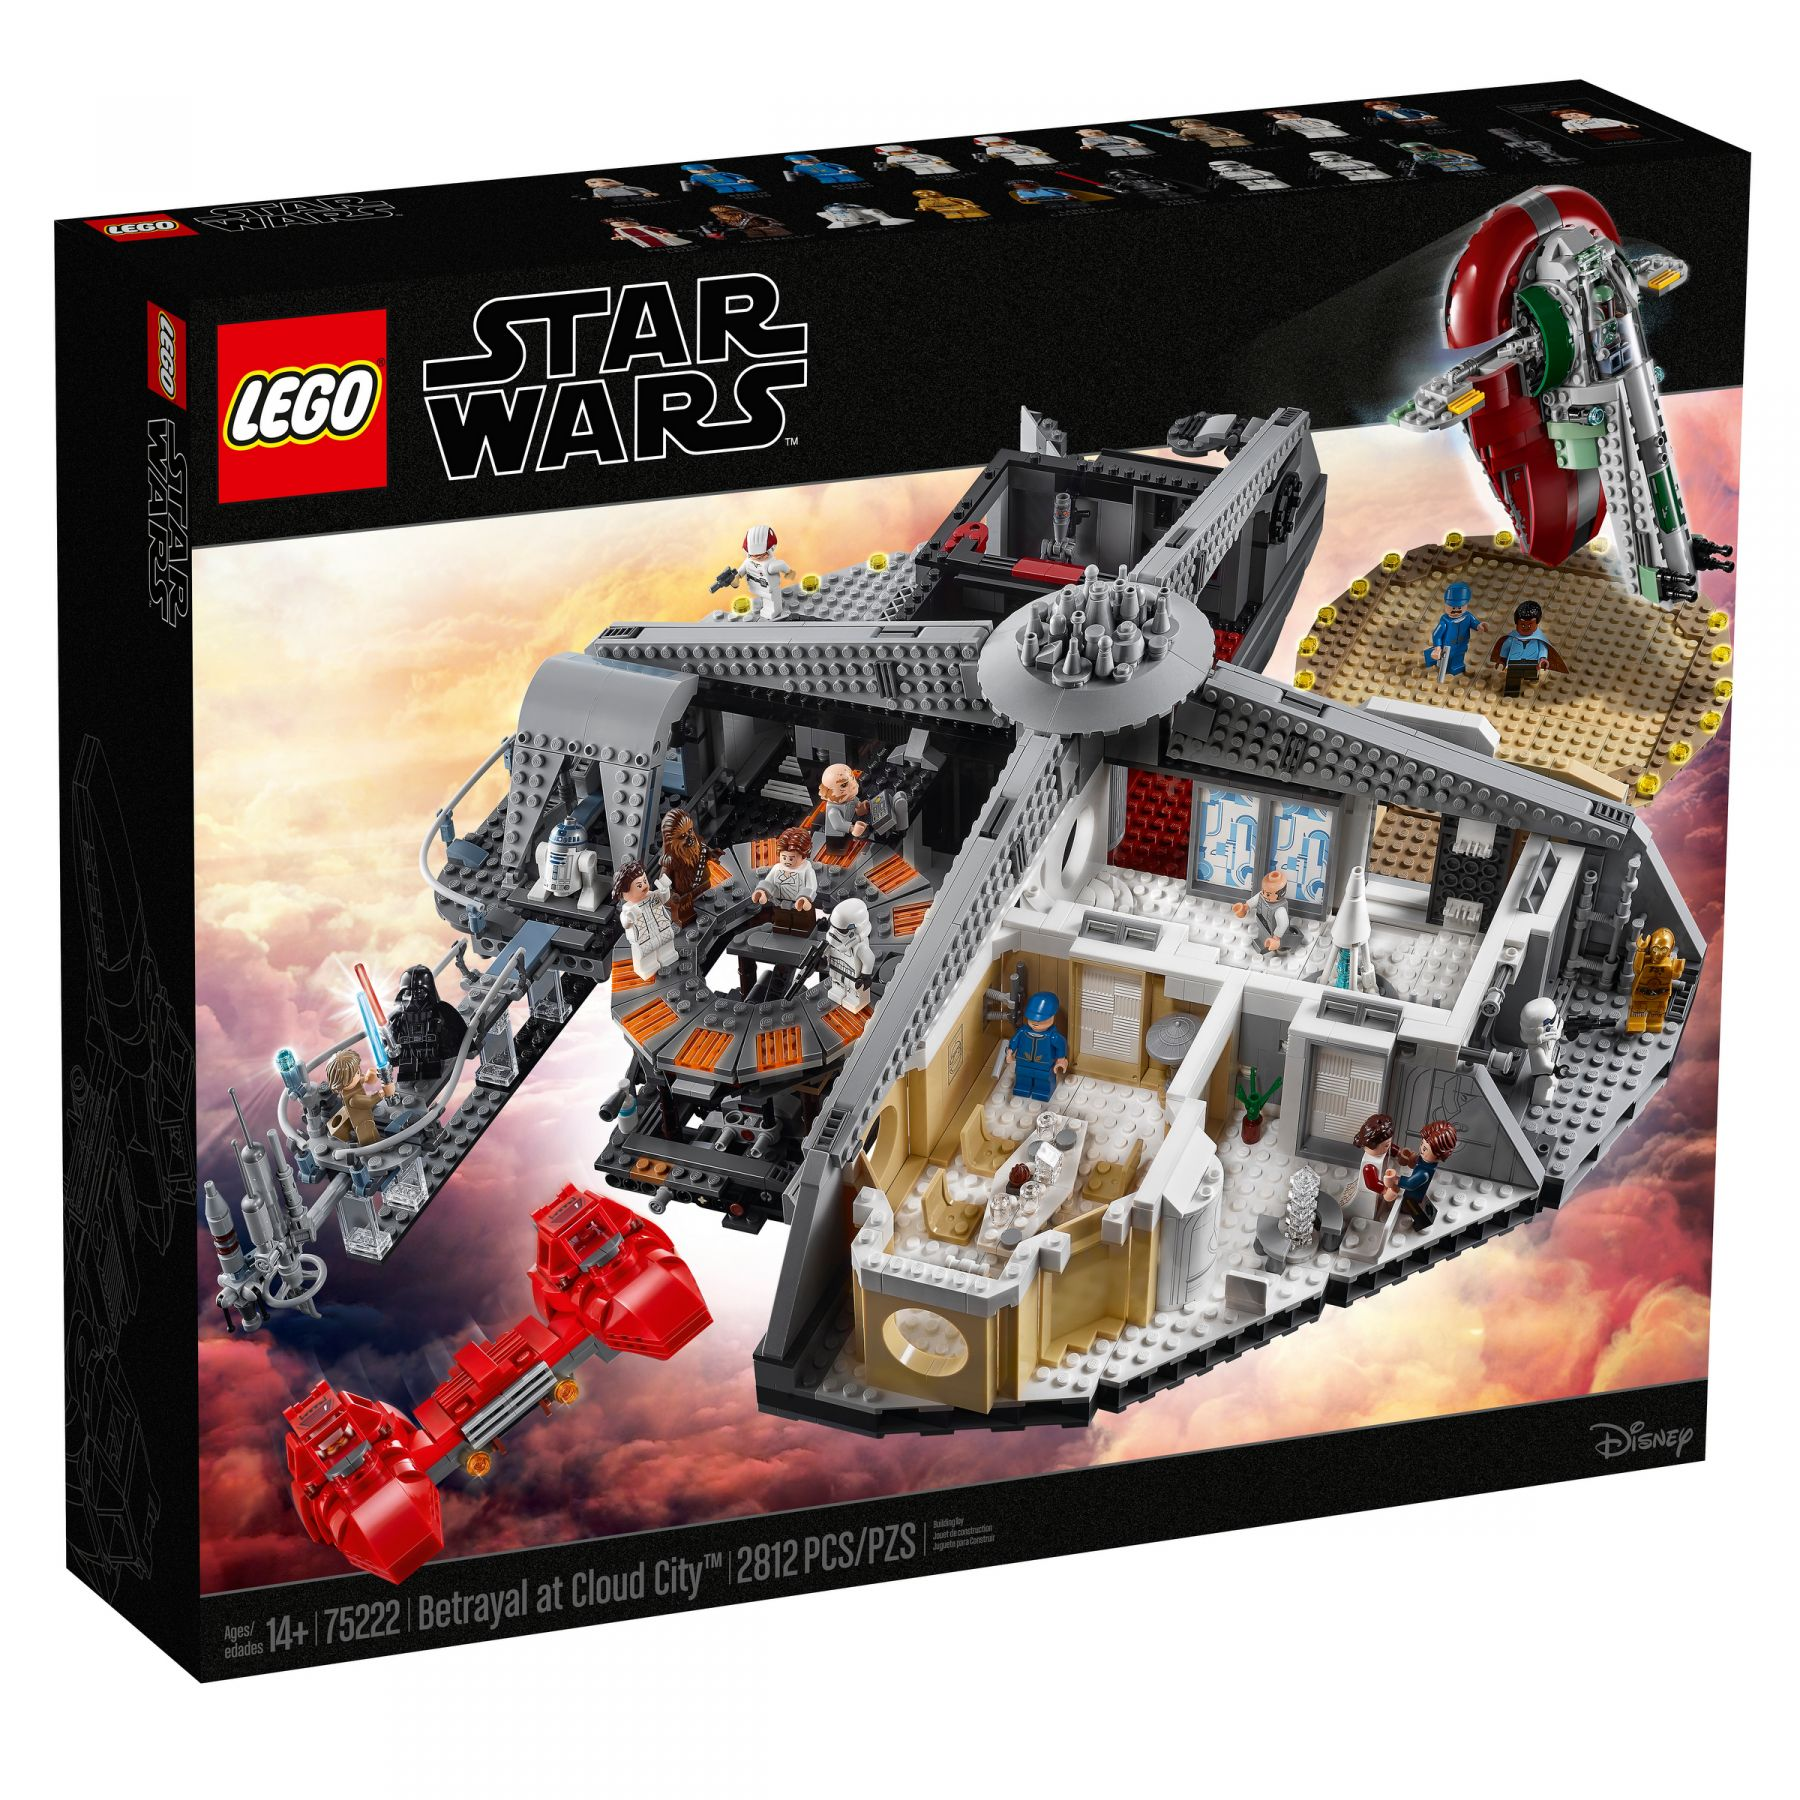 LEGO Star Wars 75222 Verrat in Cloud City™ LEGO_75222_alt1.jpg